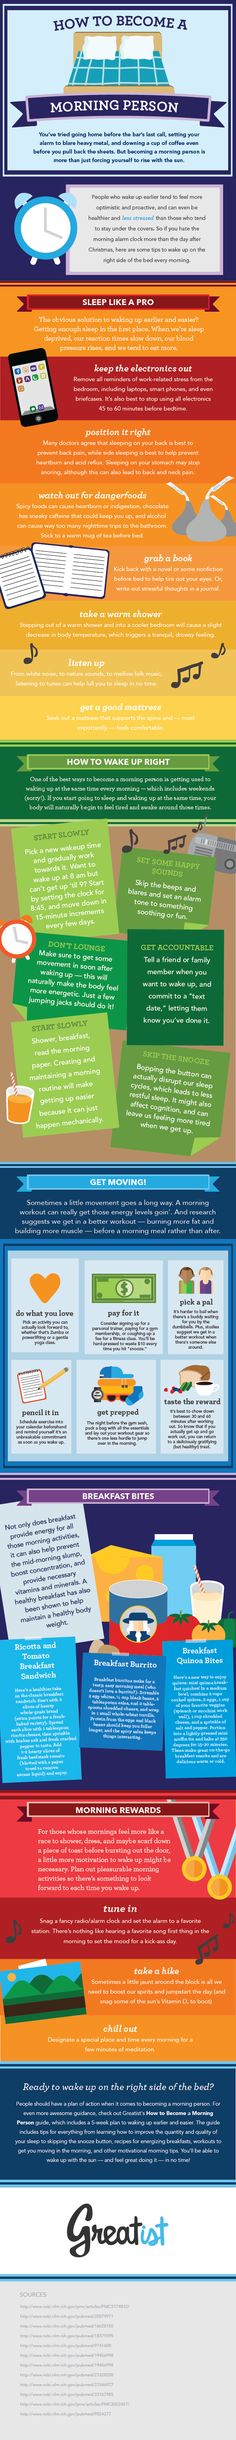 How to Become a Morning Person via Greatist